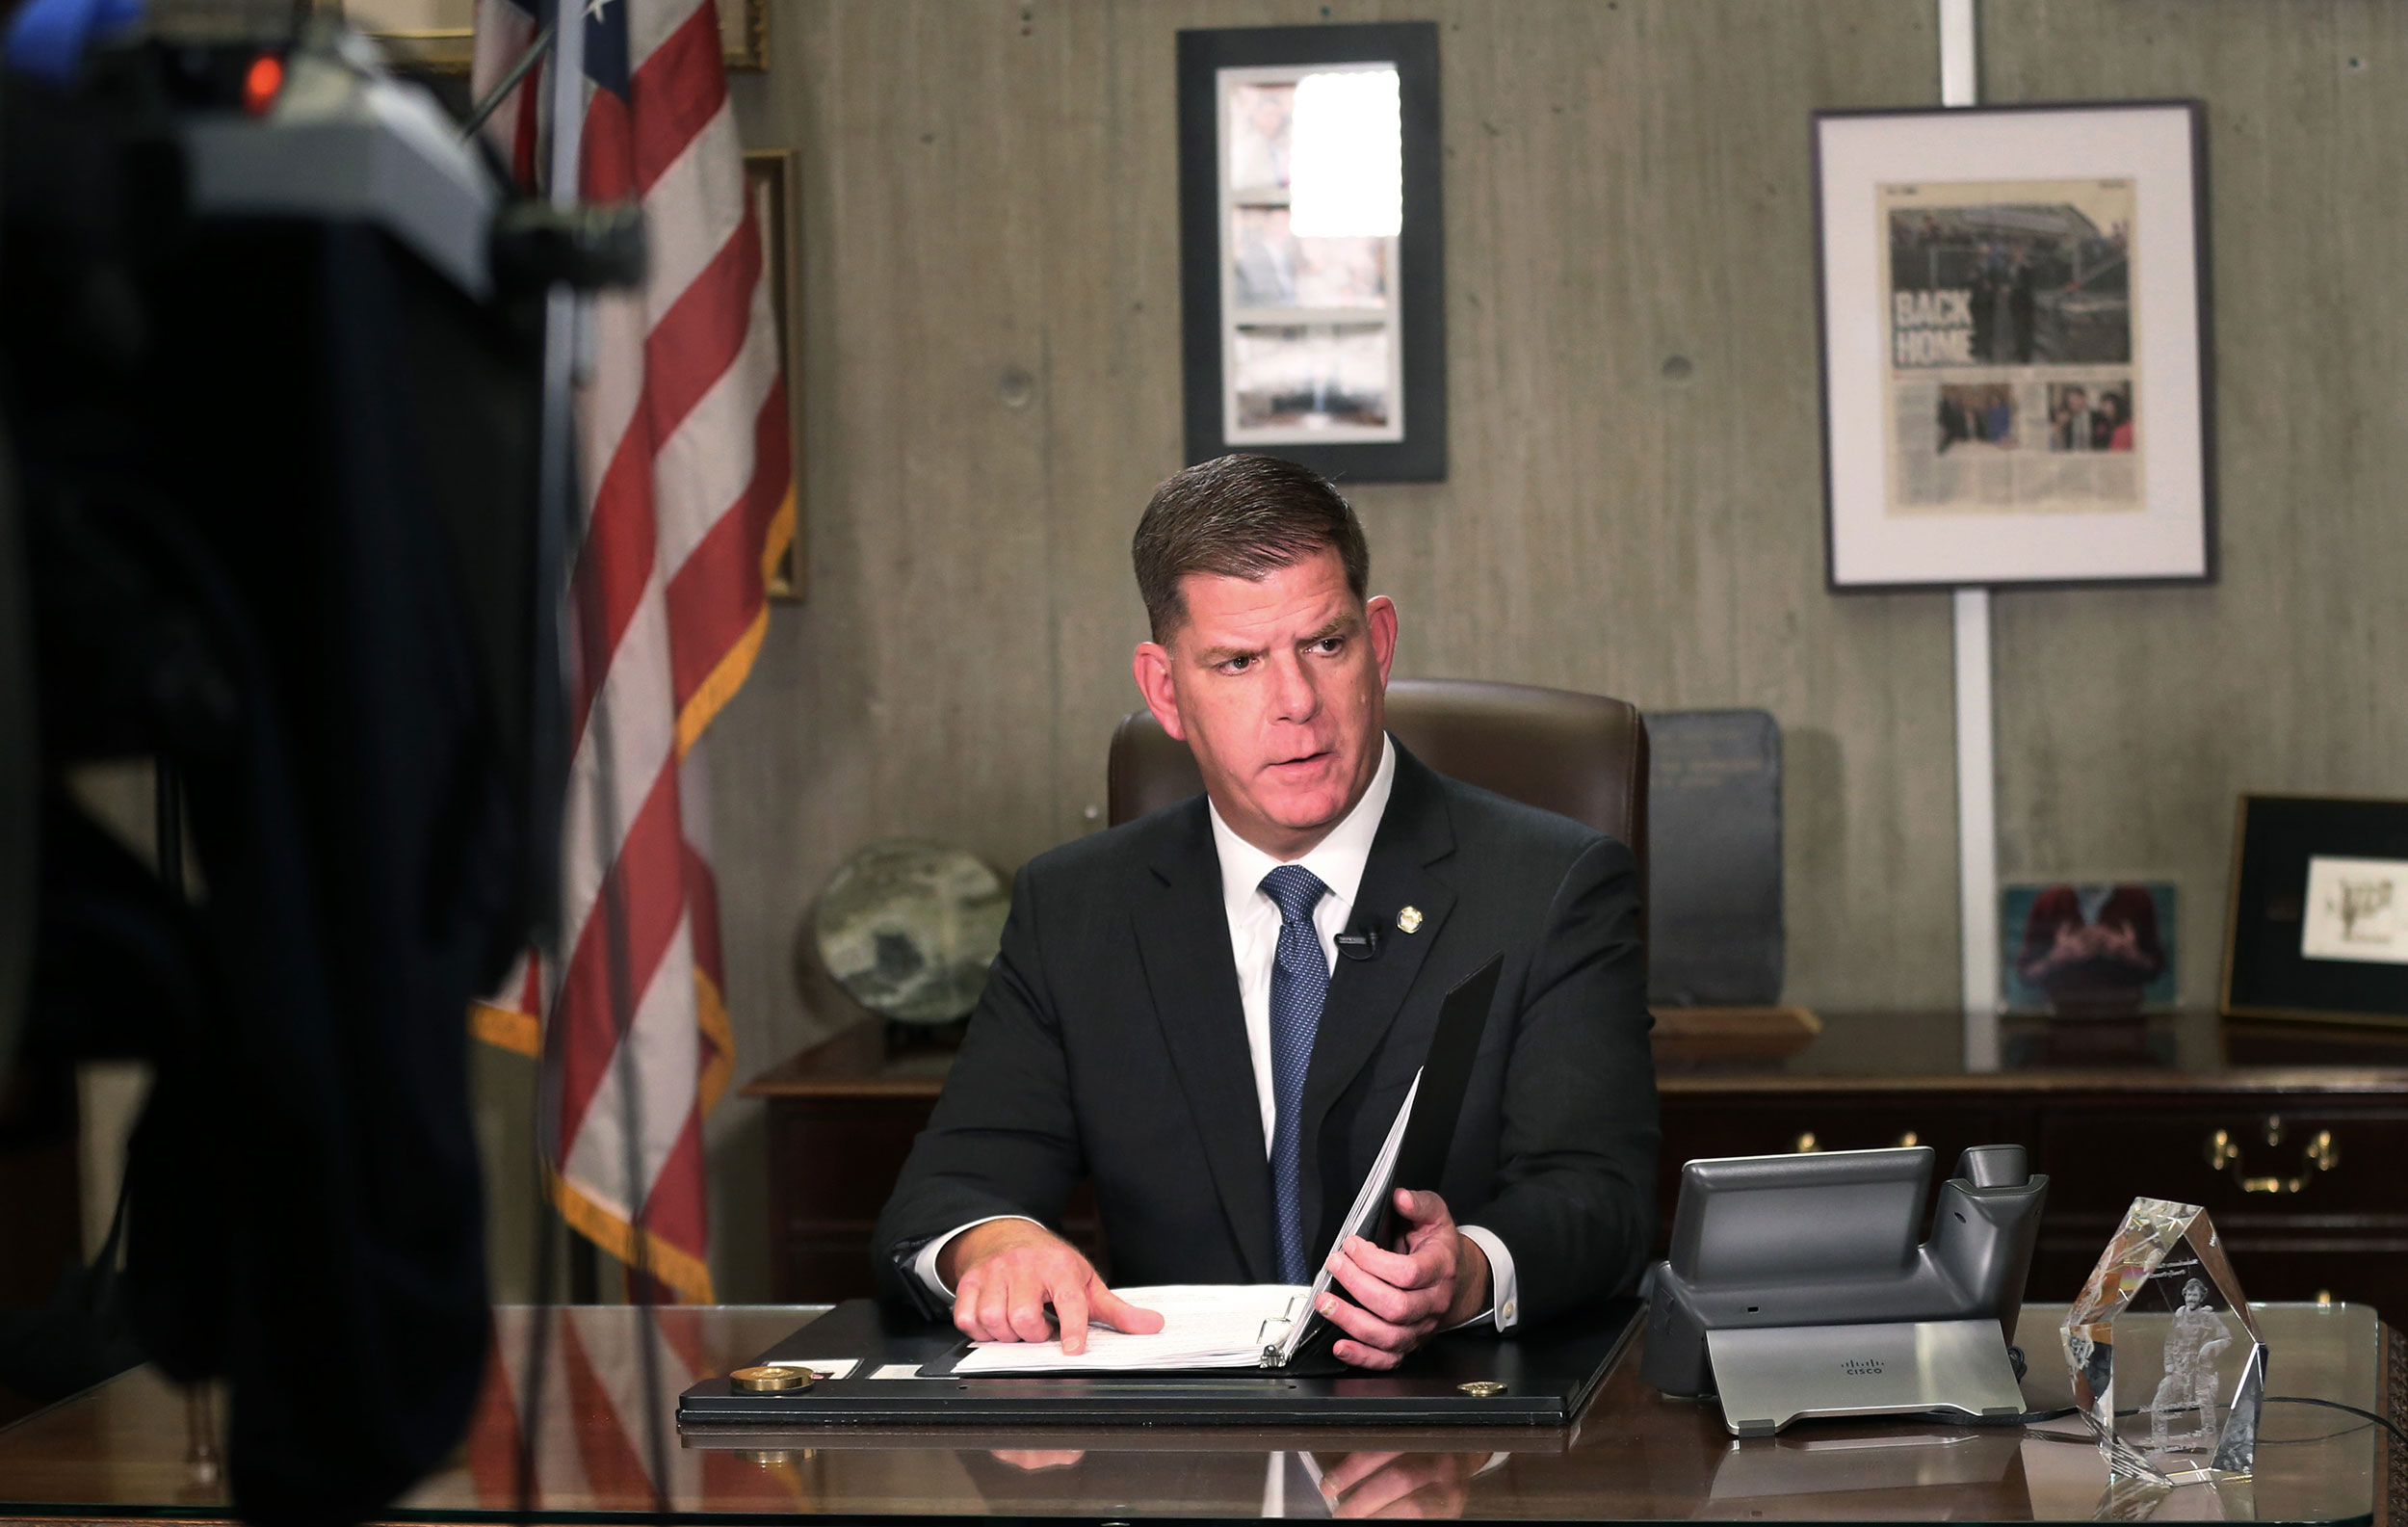 Boston Mayor Martin Walsh prepares to give a televised address from his office at Boston City Hall on March 17.